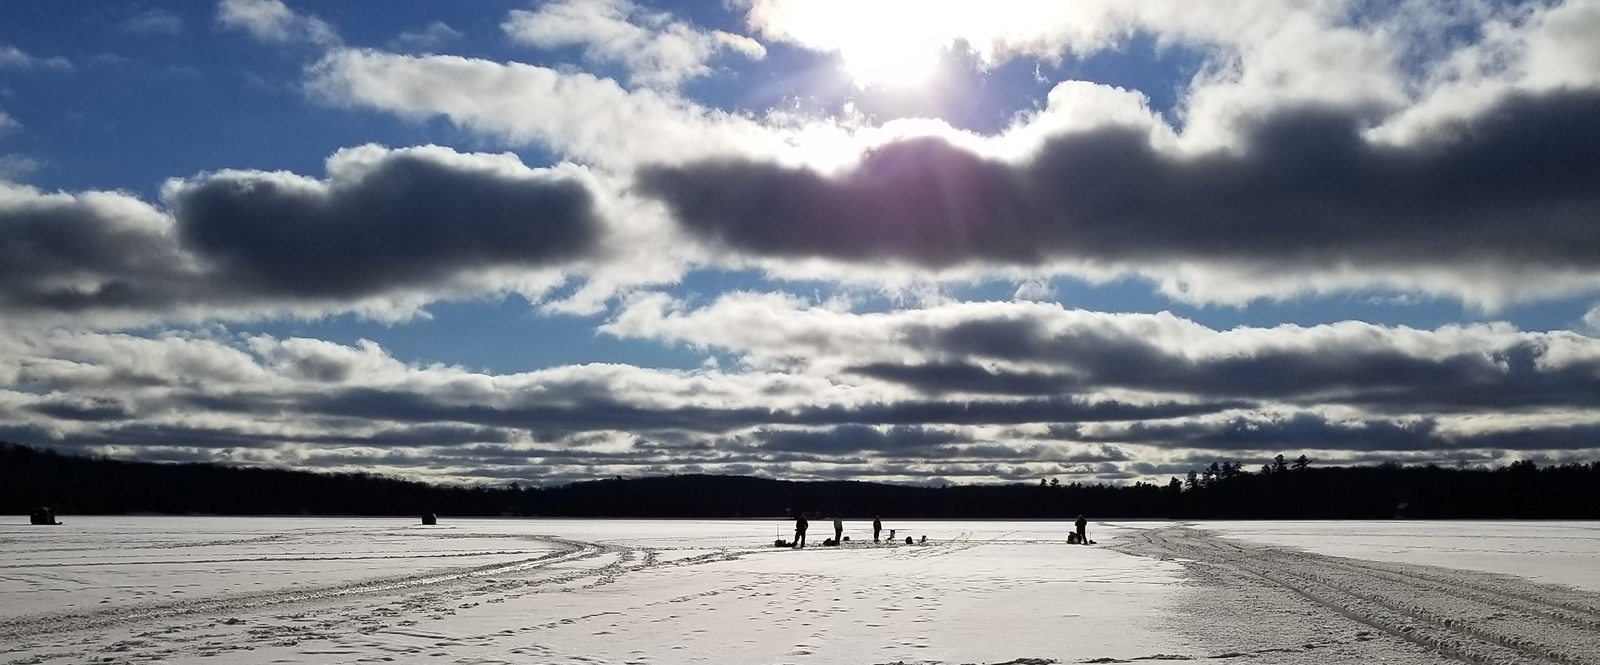 people ice fishing in the distance and clouds with the sun shining behind them